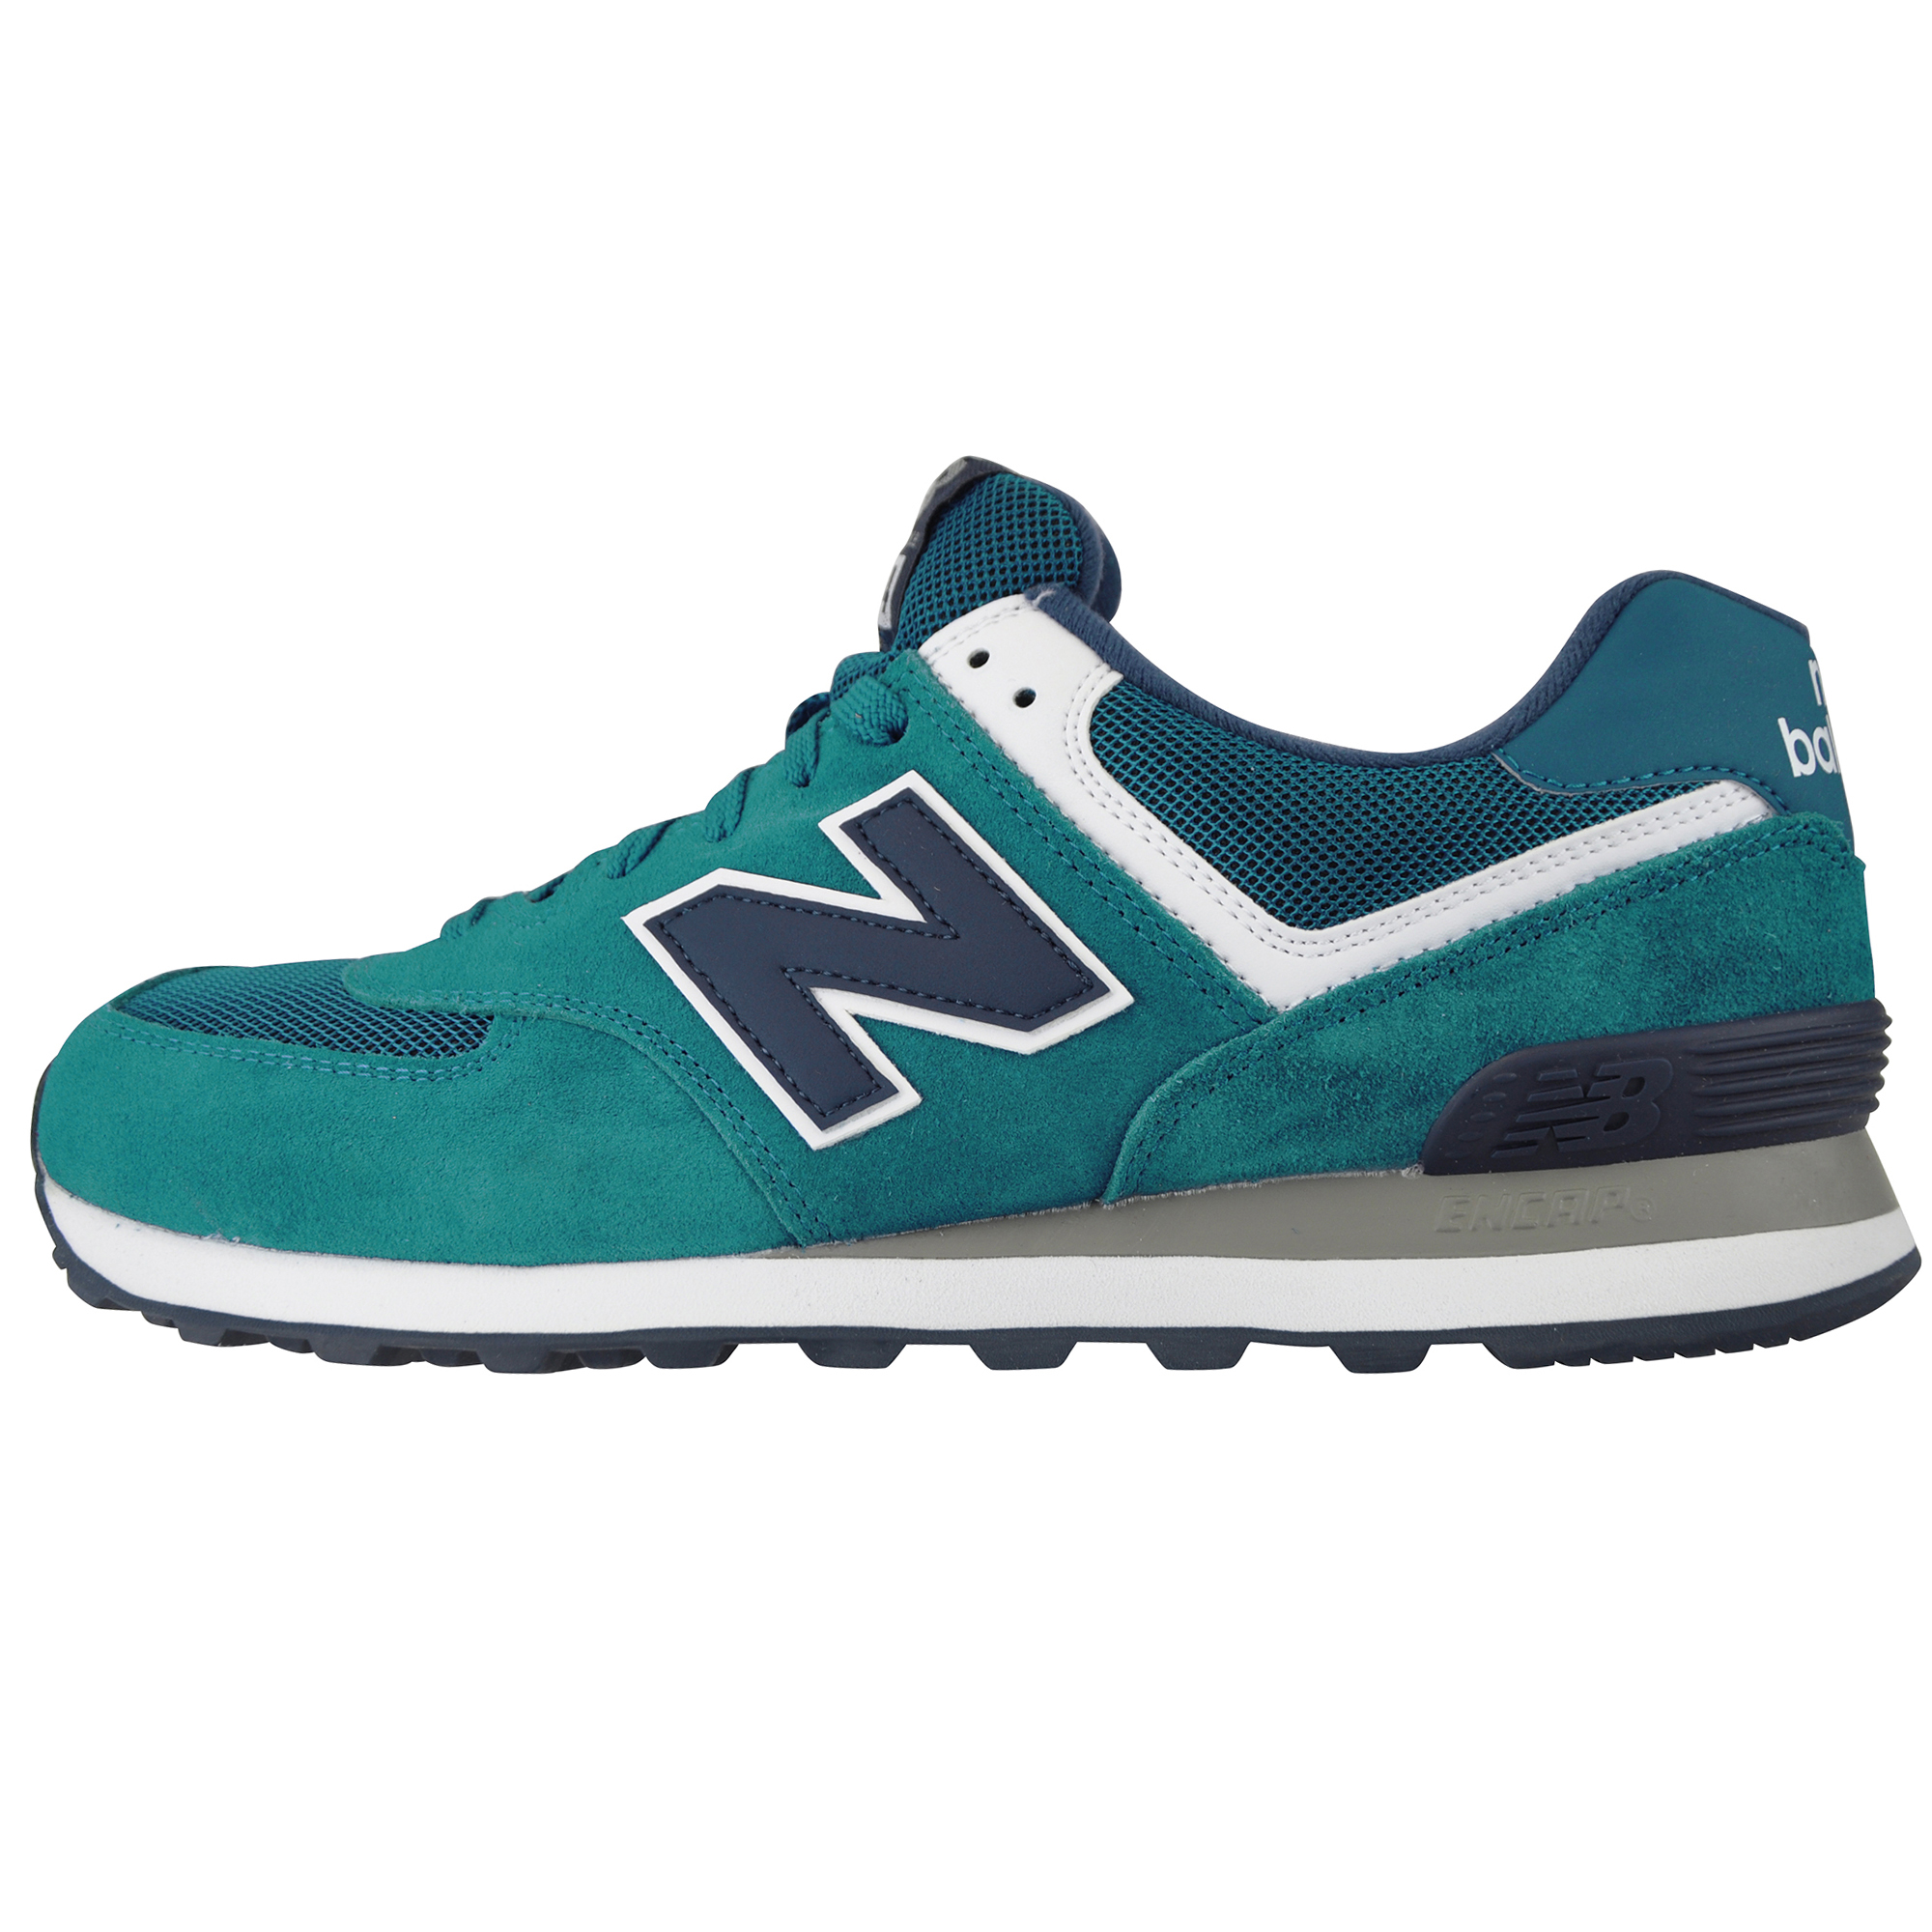 Buy New Balance Men's Classics Running Shoe and other Fashion Sneakers at narmaformcap.tk Our wide selection is eligible for free shipping and free returns.